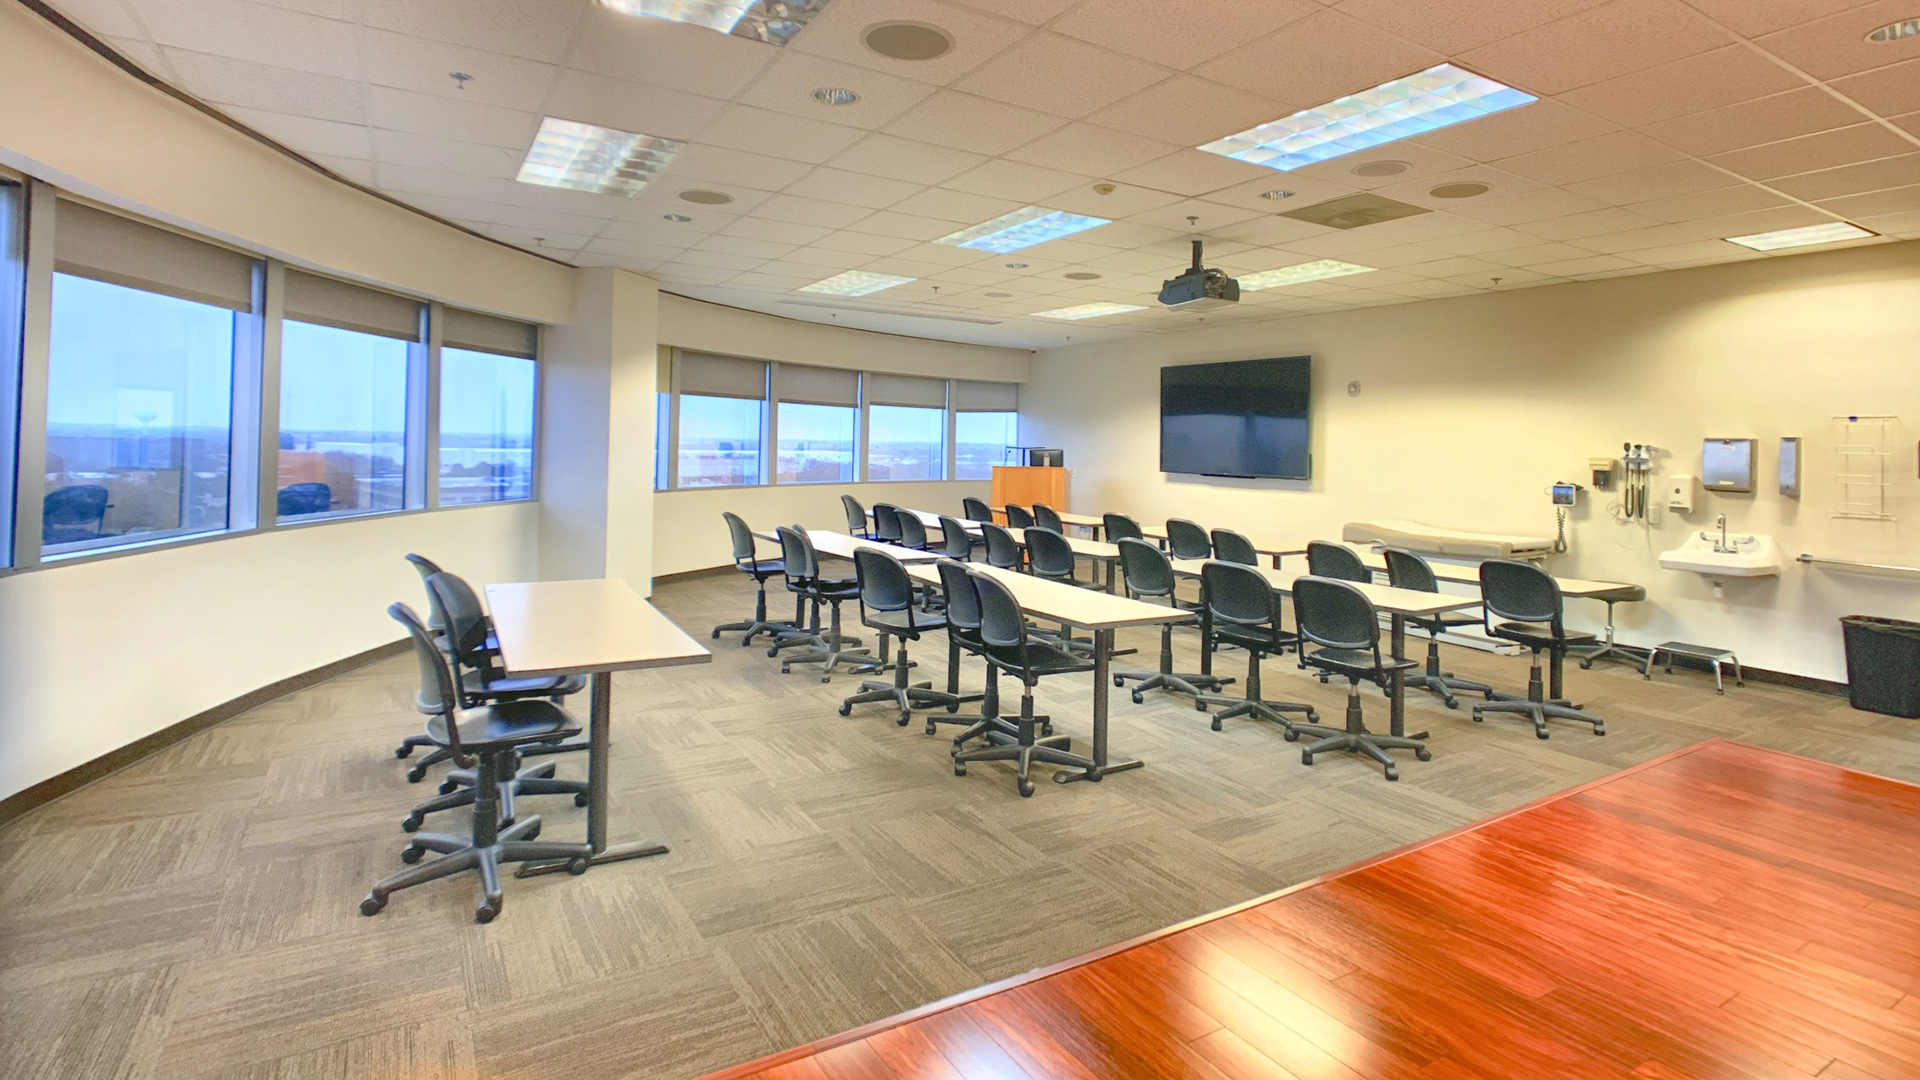 400 N Sam Houston Pky Training Room 1 Photo